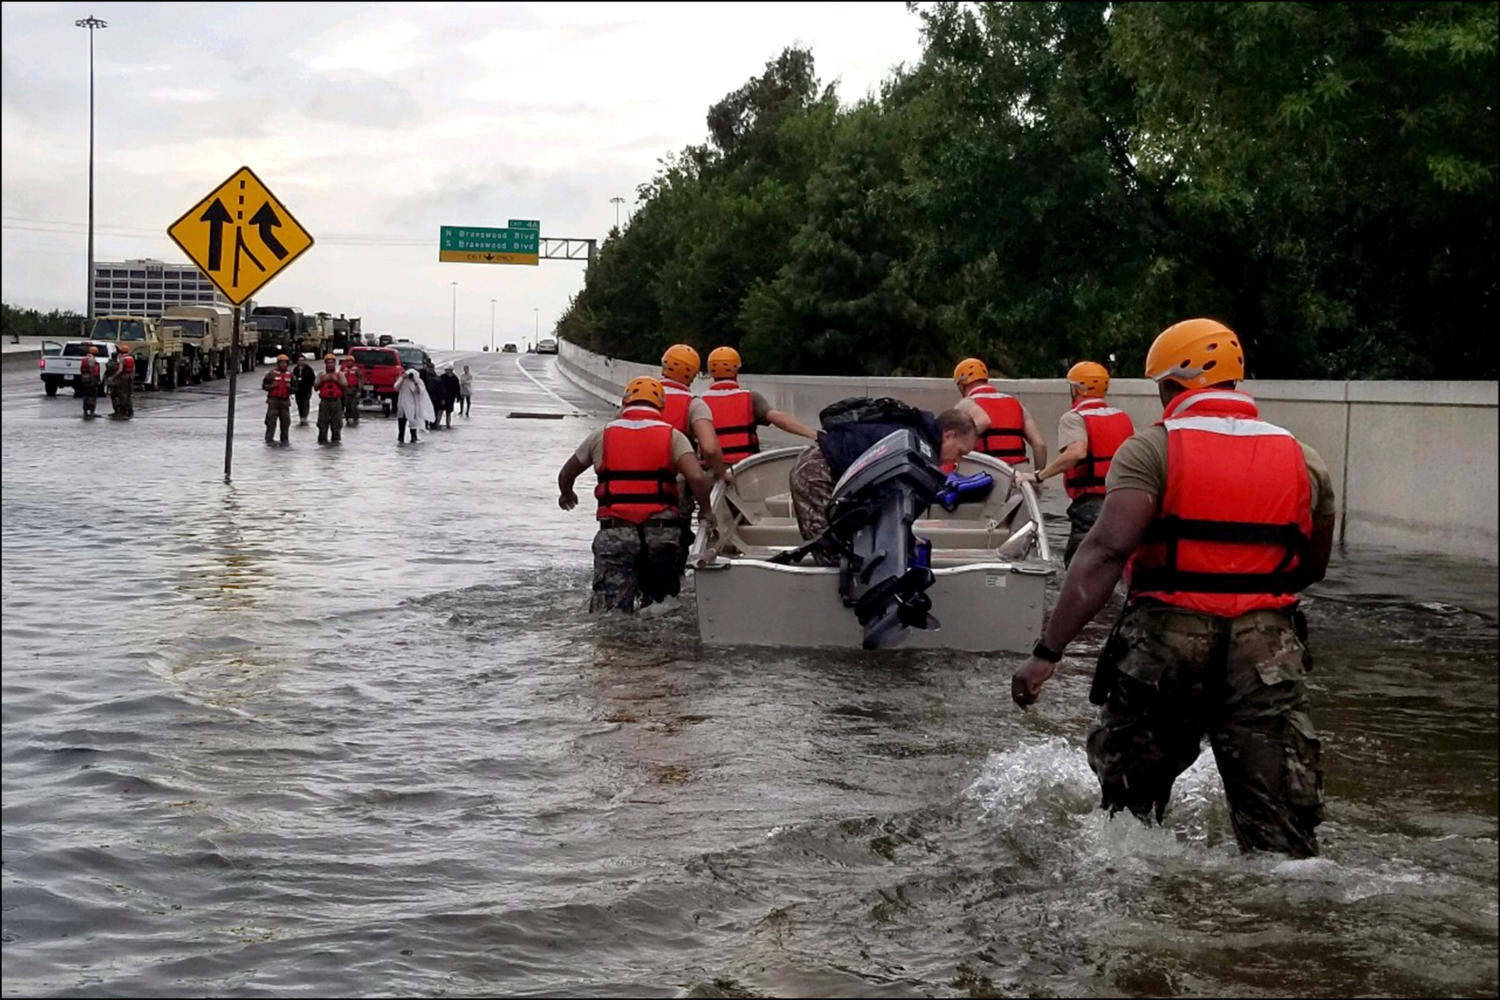 Texas Army National Guard troops participate in Hurricane Harvey relief efforts. (Wikimedia Commons photo)